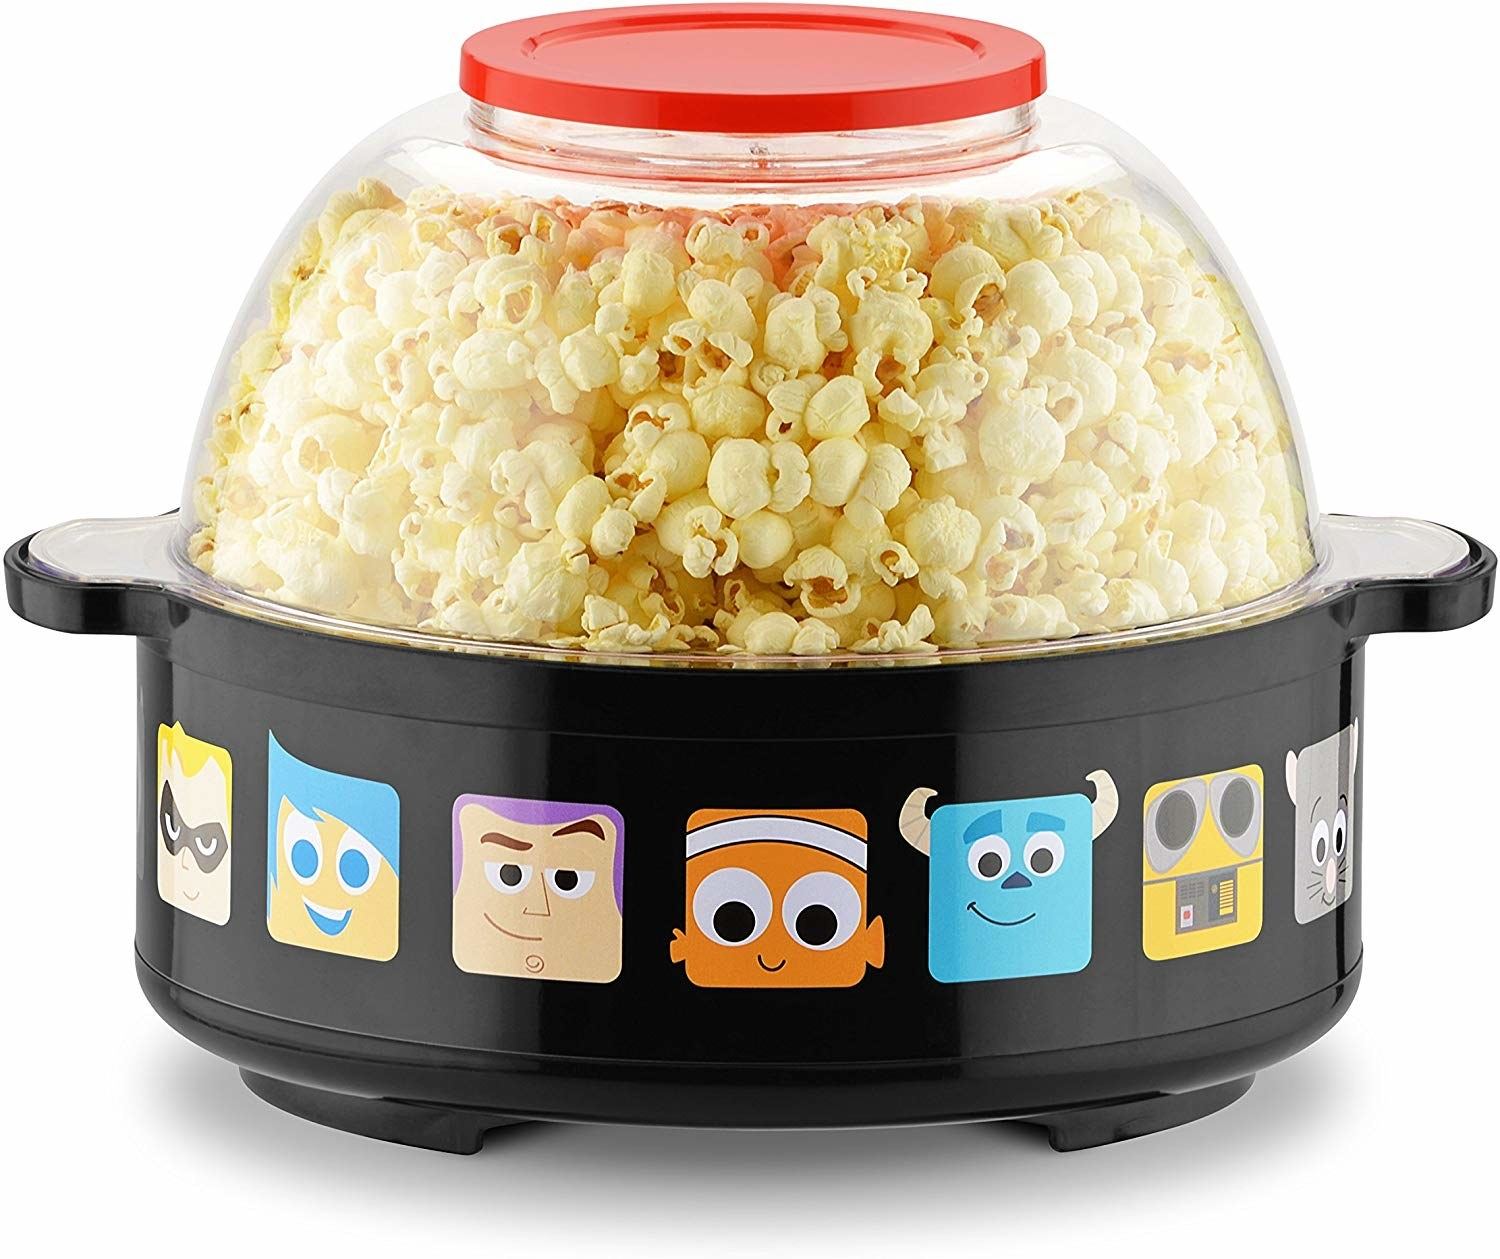 a popcorn maker with pixar characters around the bottom edges